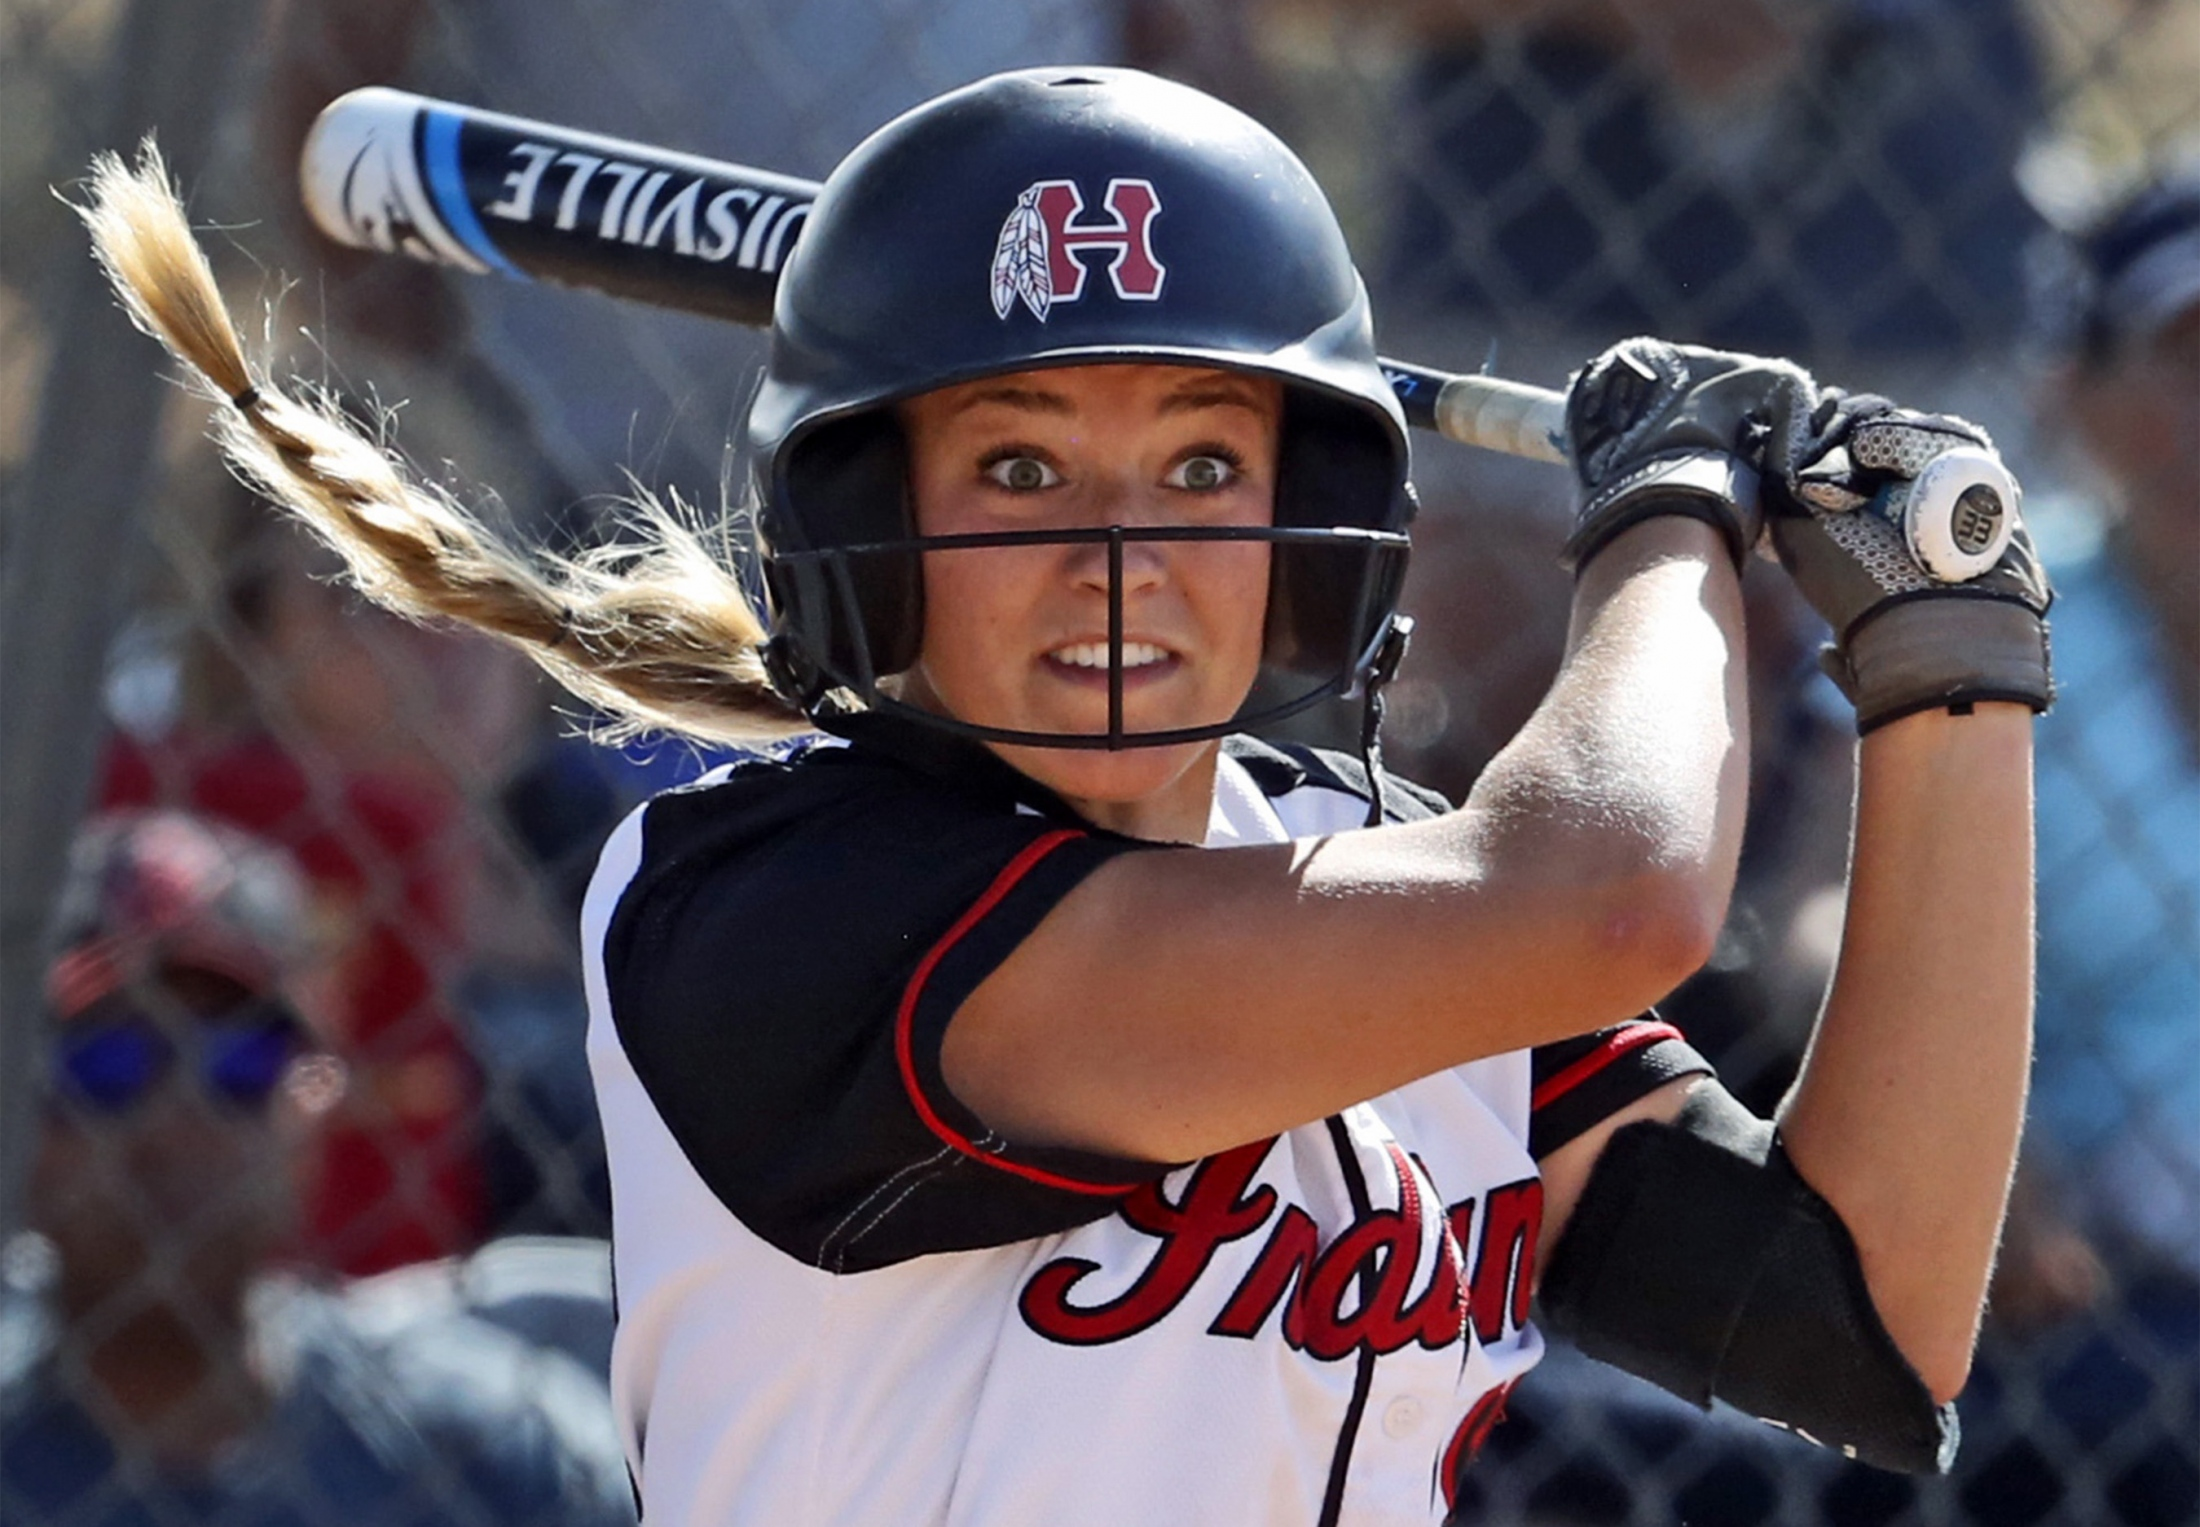 Hart's Abby Sweet (26) swings at bat during a CIF-Southern Section semi final softball game against Ayala High School of Chino Hills on Monday, May 30, 2017. Katharine Lotze/The Signal